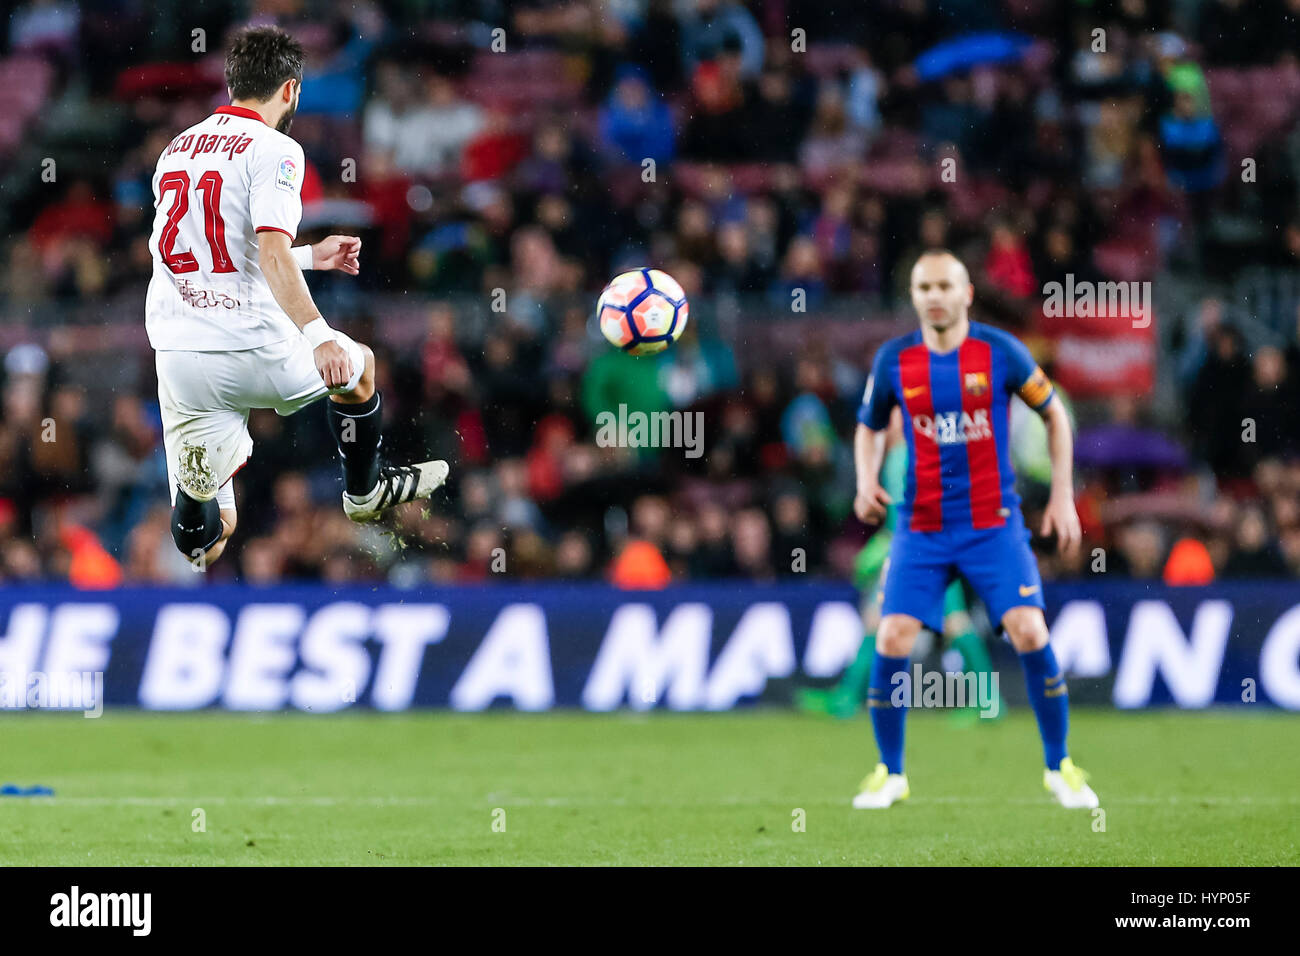 April 5, 2017: Nico Pareja during the match between FC Barcelona vs Sevilla, for the round 30 of the Liga Santander, - Stock Image